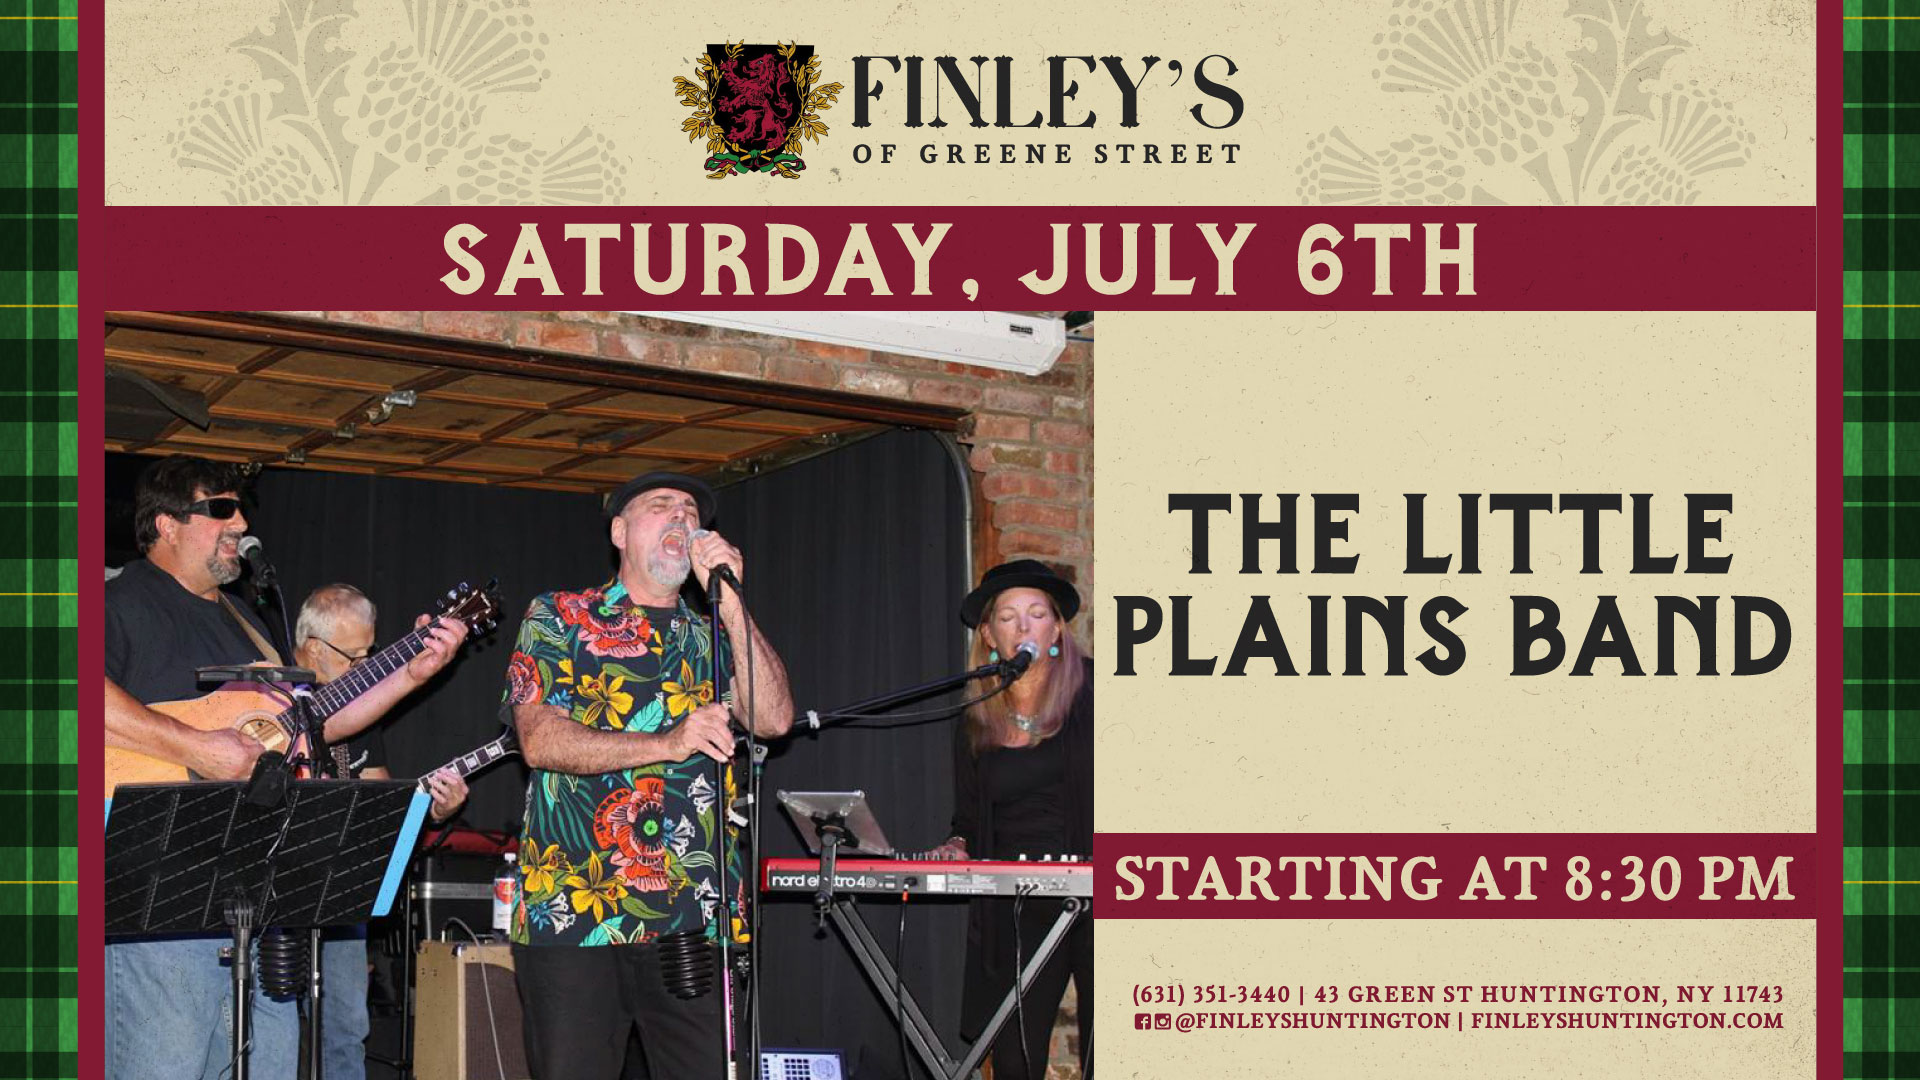 Flyer for live music with The Little Plains Band at 8:30pm on July 6th.